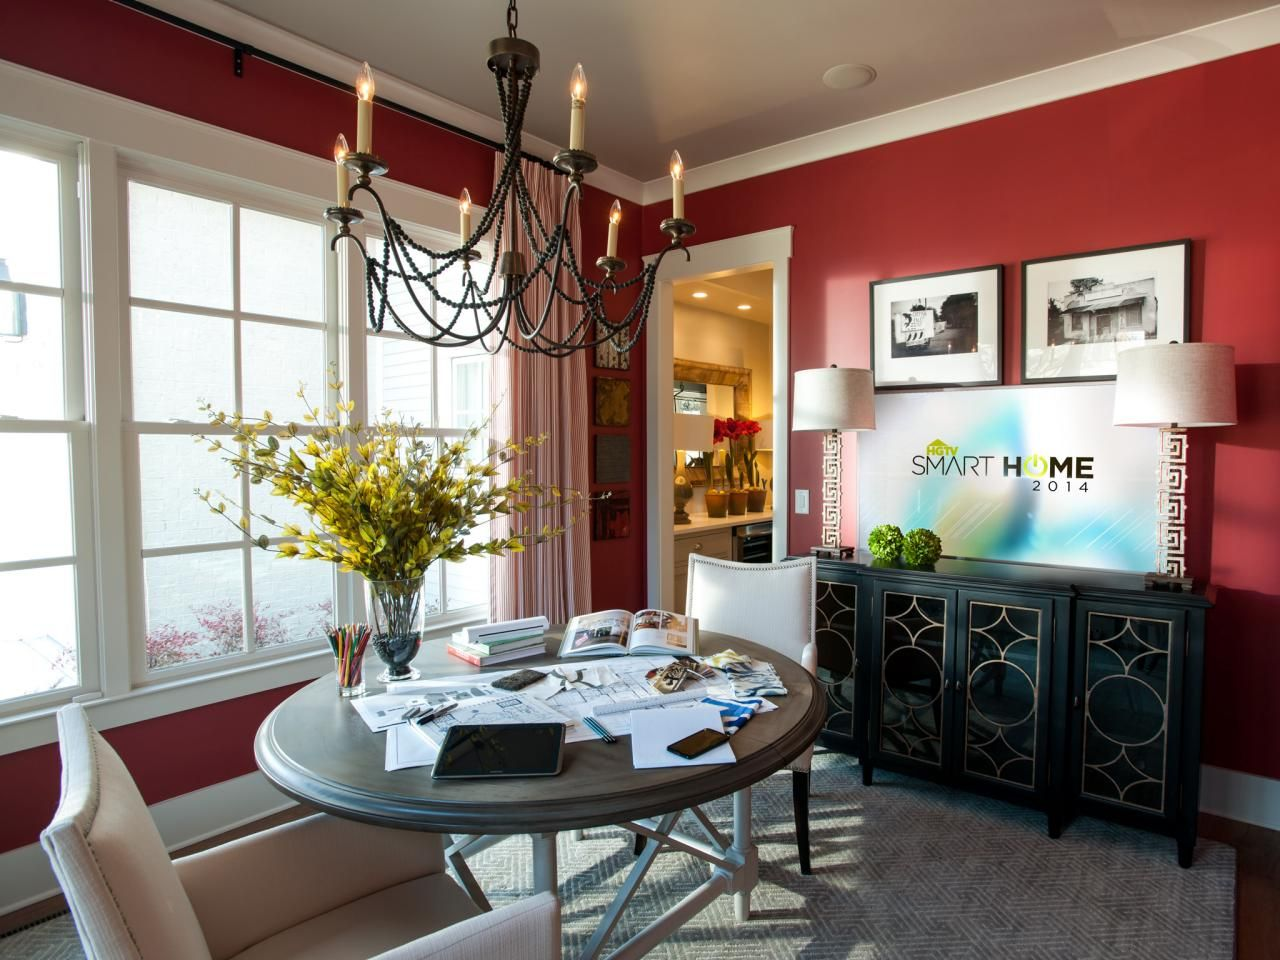 Beautiful Rooms From Hgtv Smart Home 2014  Hgtv Barn Doors And Room Extraordinary 2014 Dining Room Colors Decorating Design